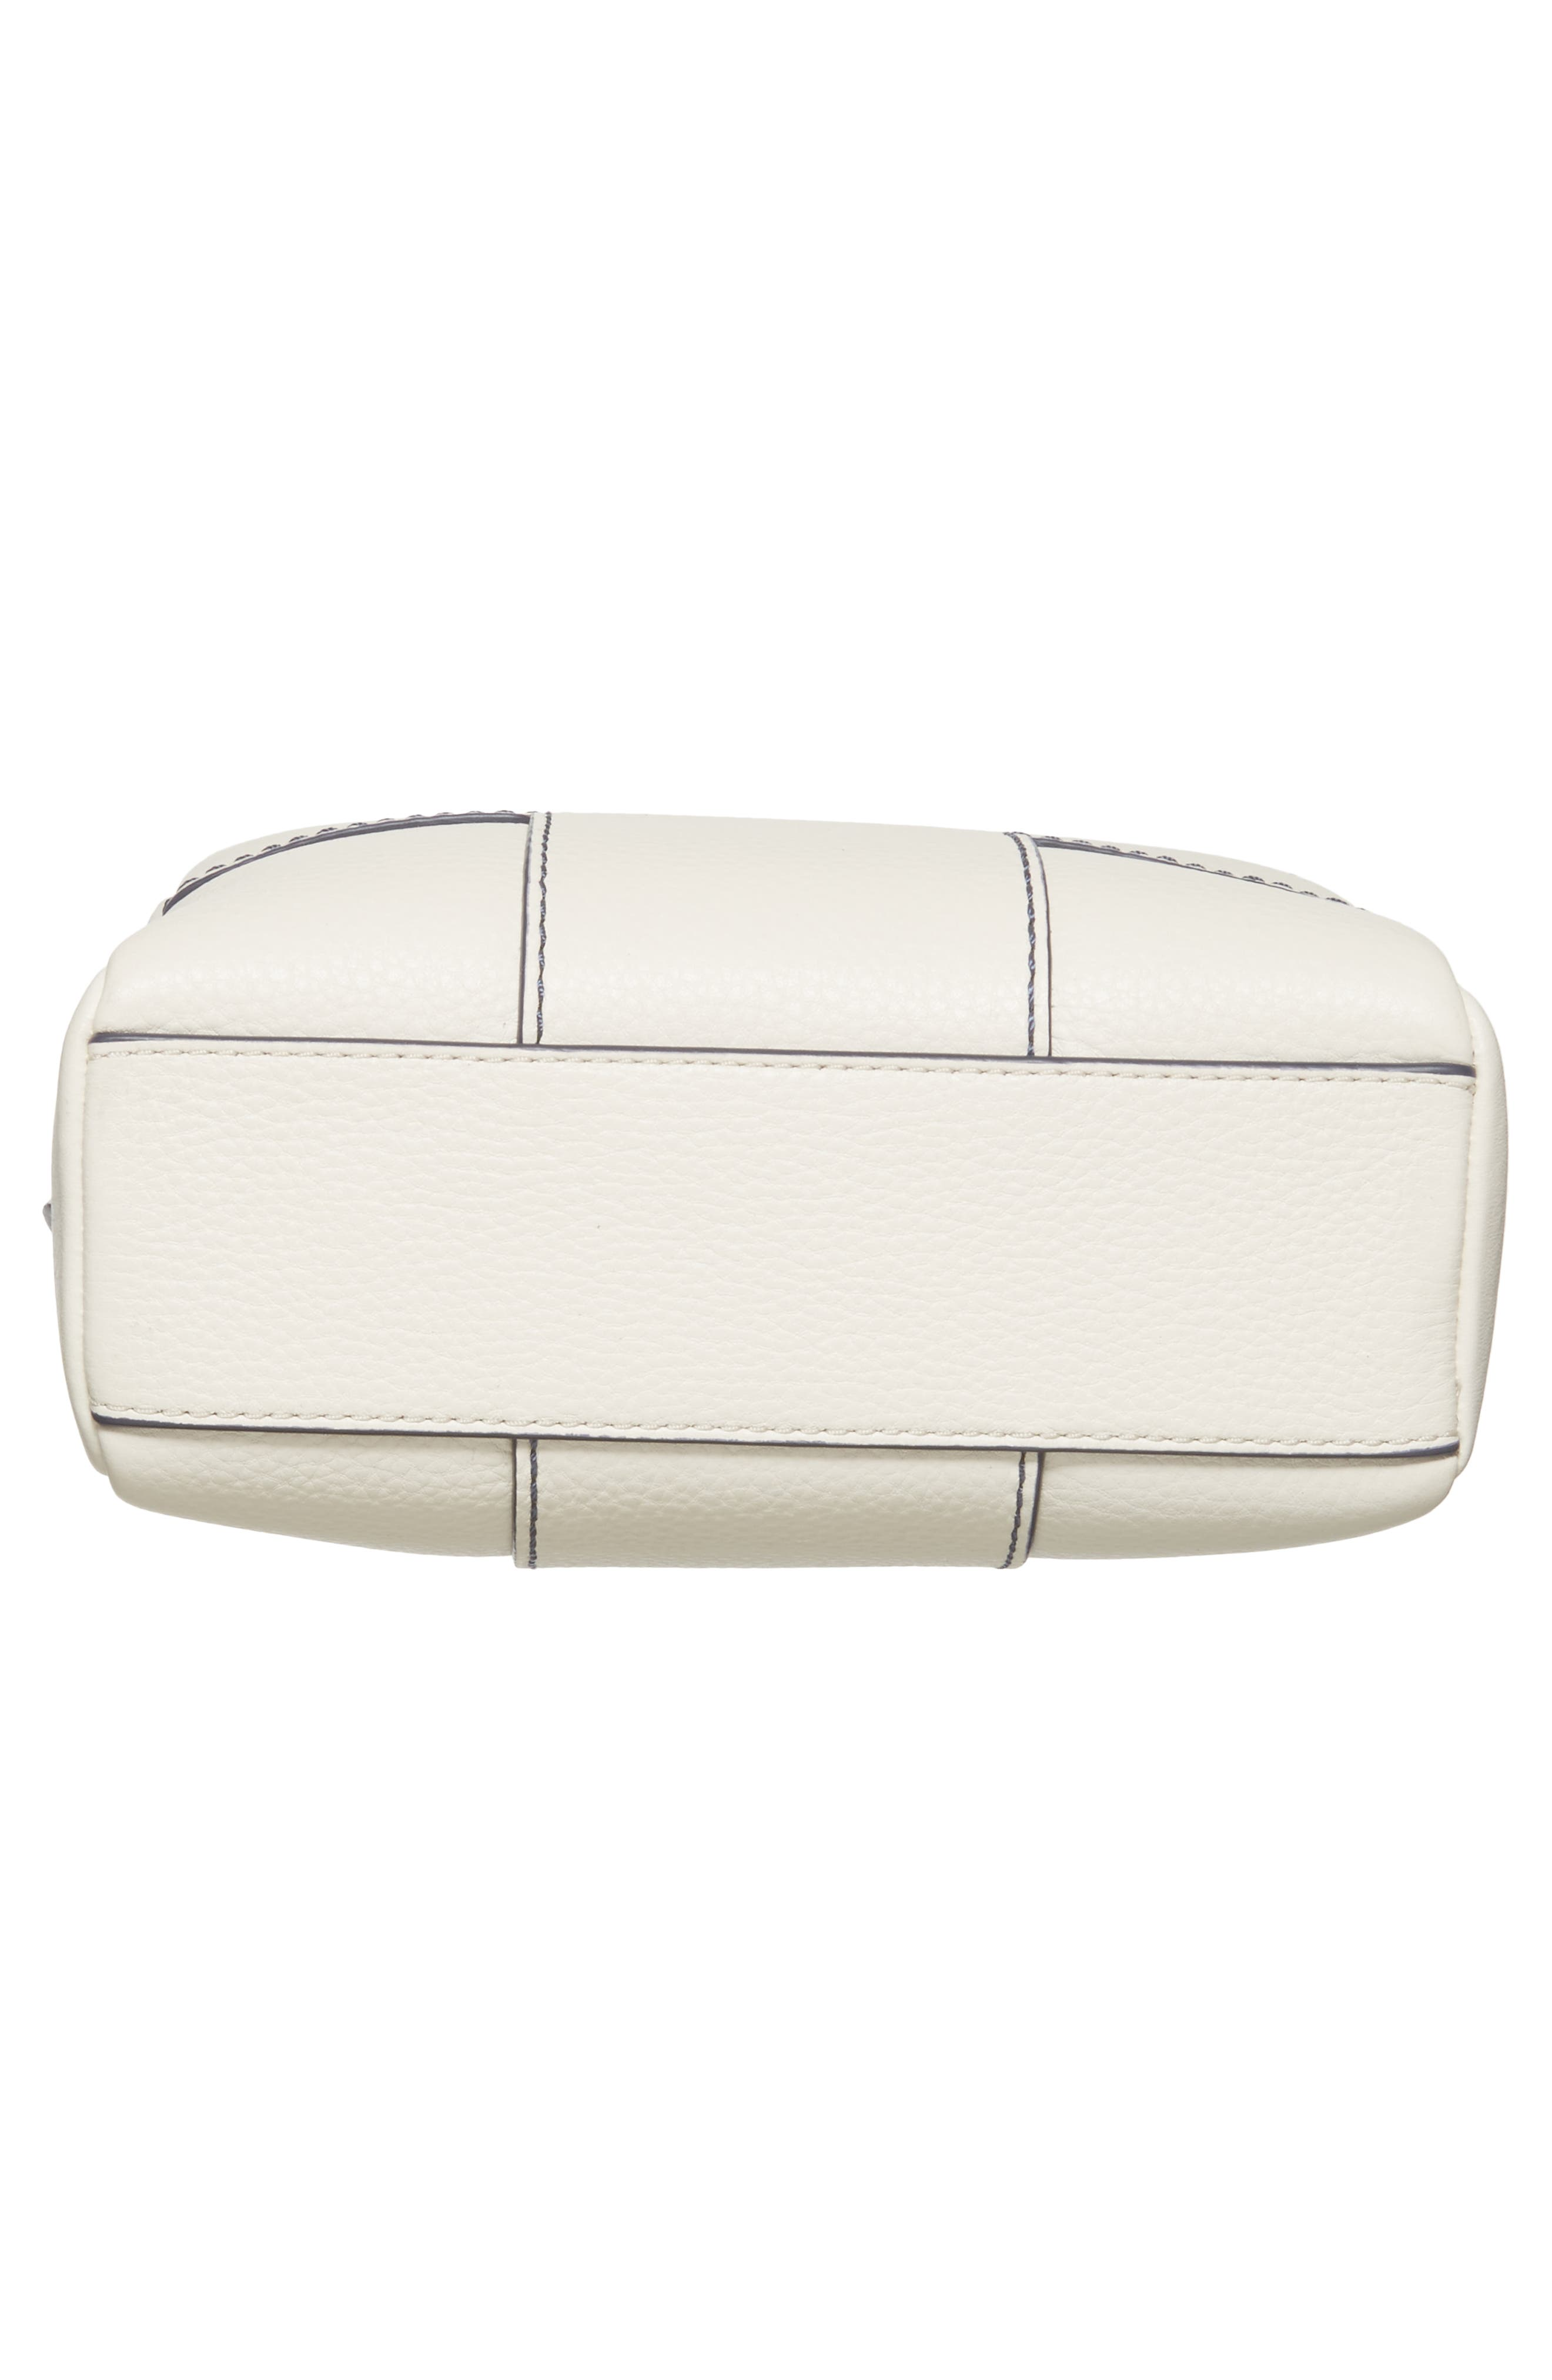 Block-T Double Zip Leather Crossbody Bag,                             Alternate thumbnail 6, color,                             New Ivory